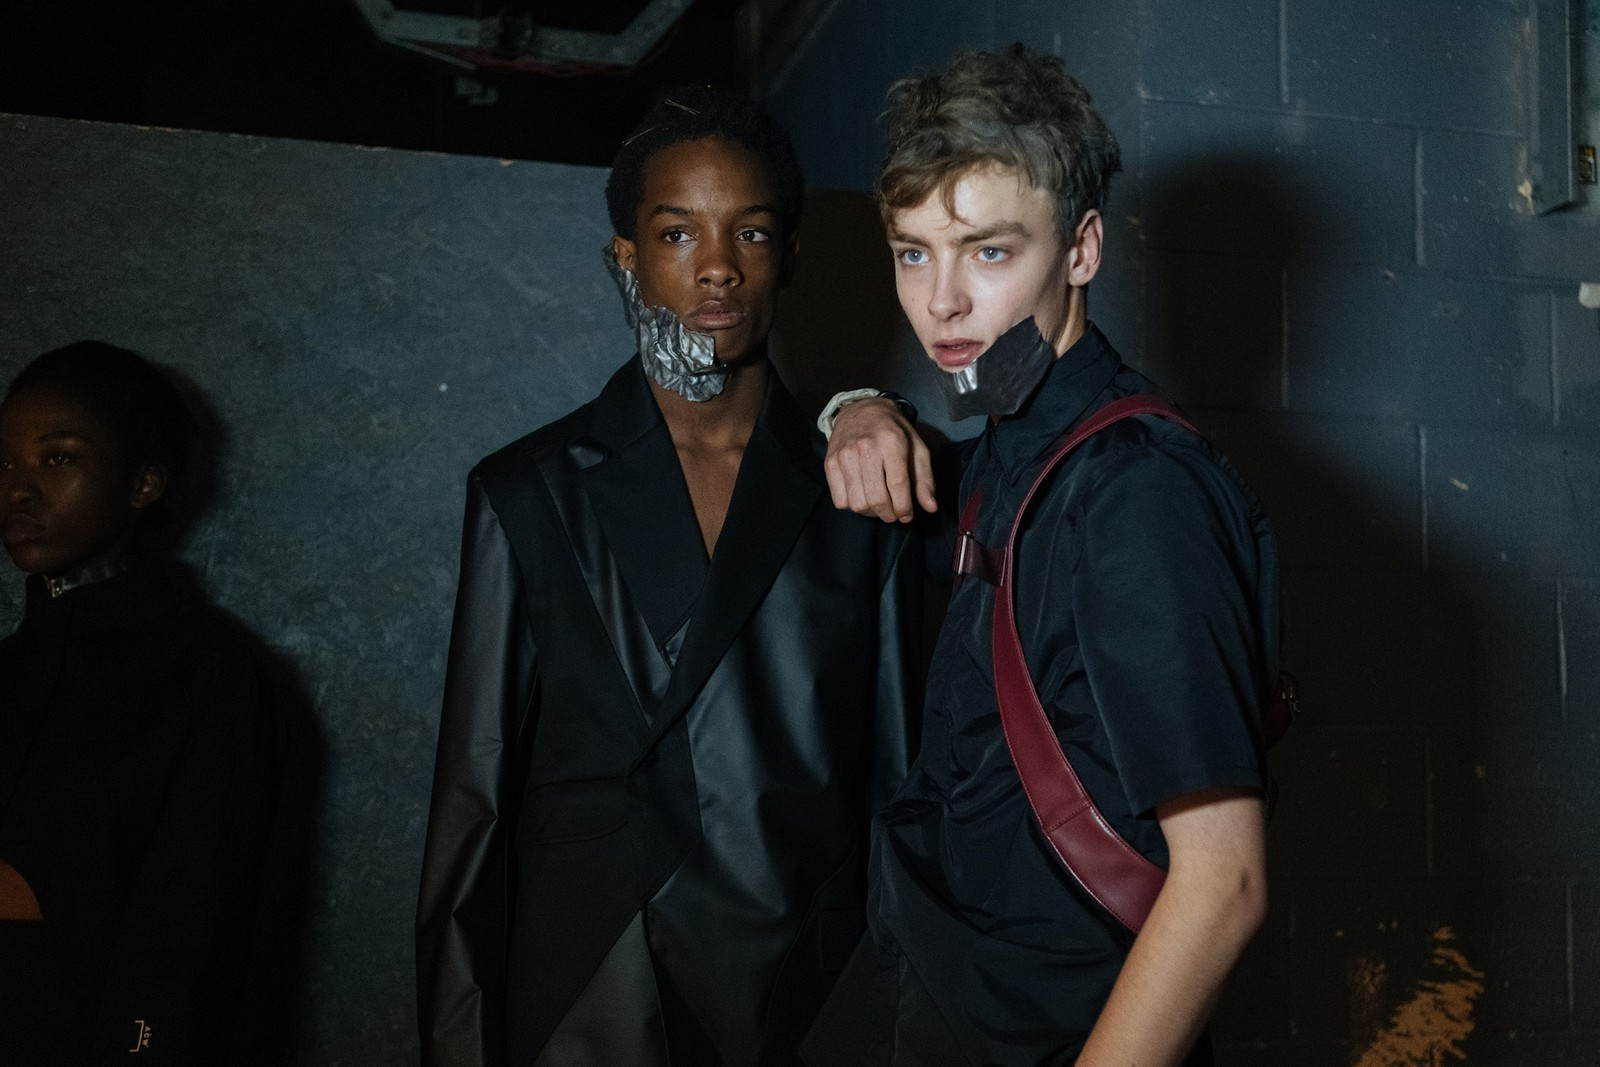 Samuel Ross A-COLD-WALL* BFC/GQ Fund Virgil Abloh Grace Wales Bonner Liam Hodges Cottweiler LVMH Prize London Fashion Week: Men's LFW:M Polythene Objects